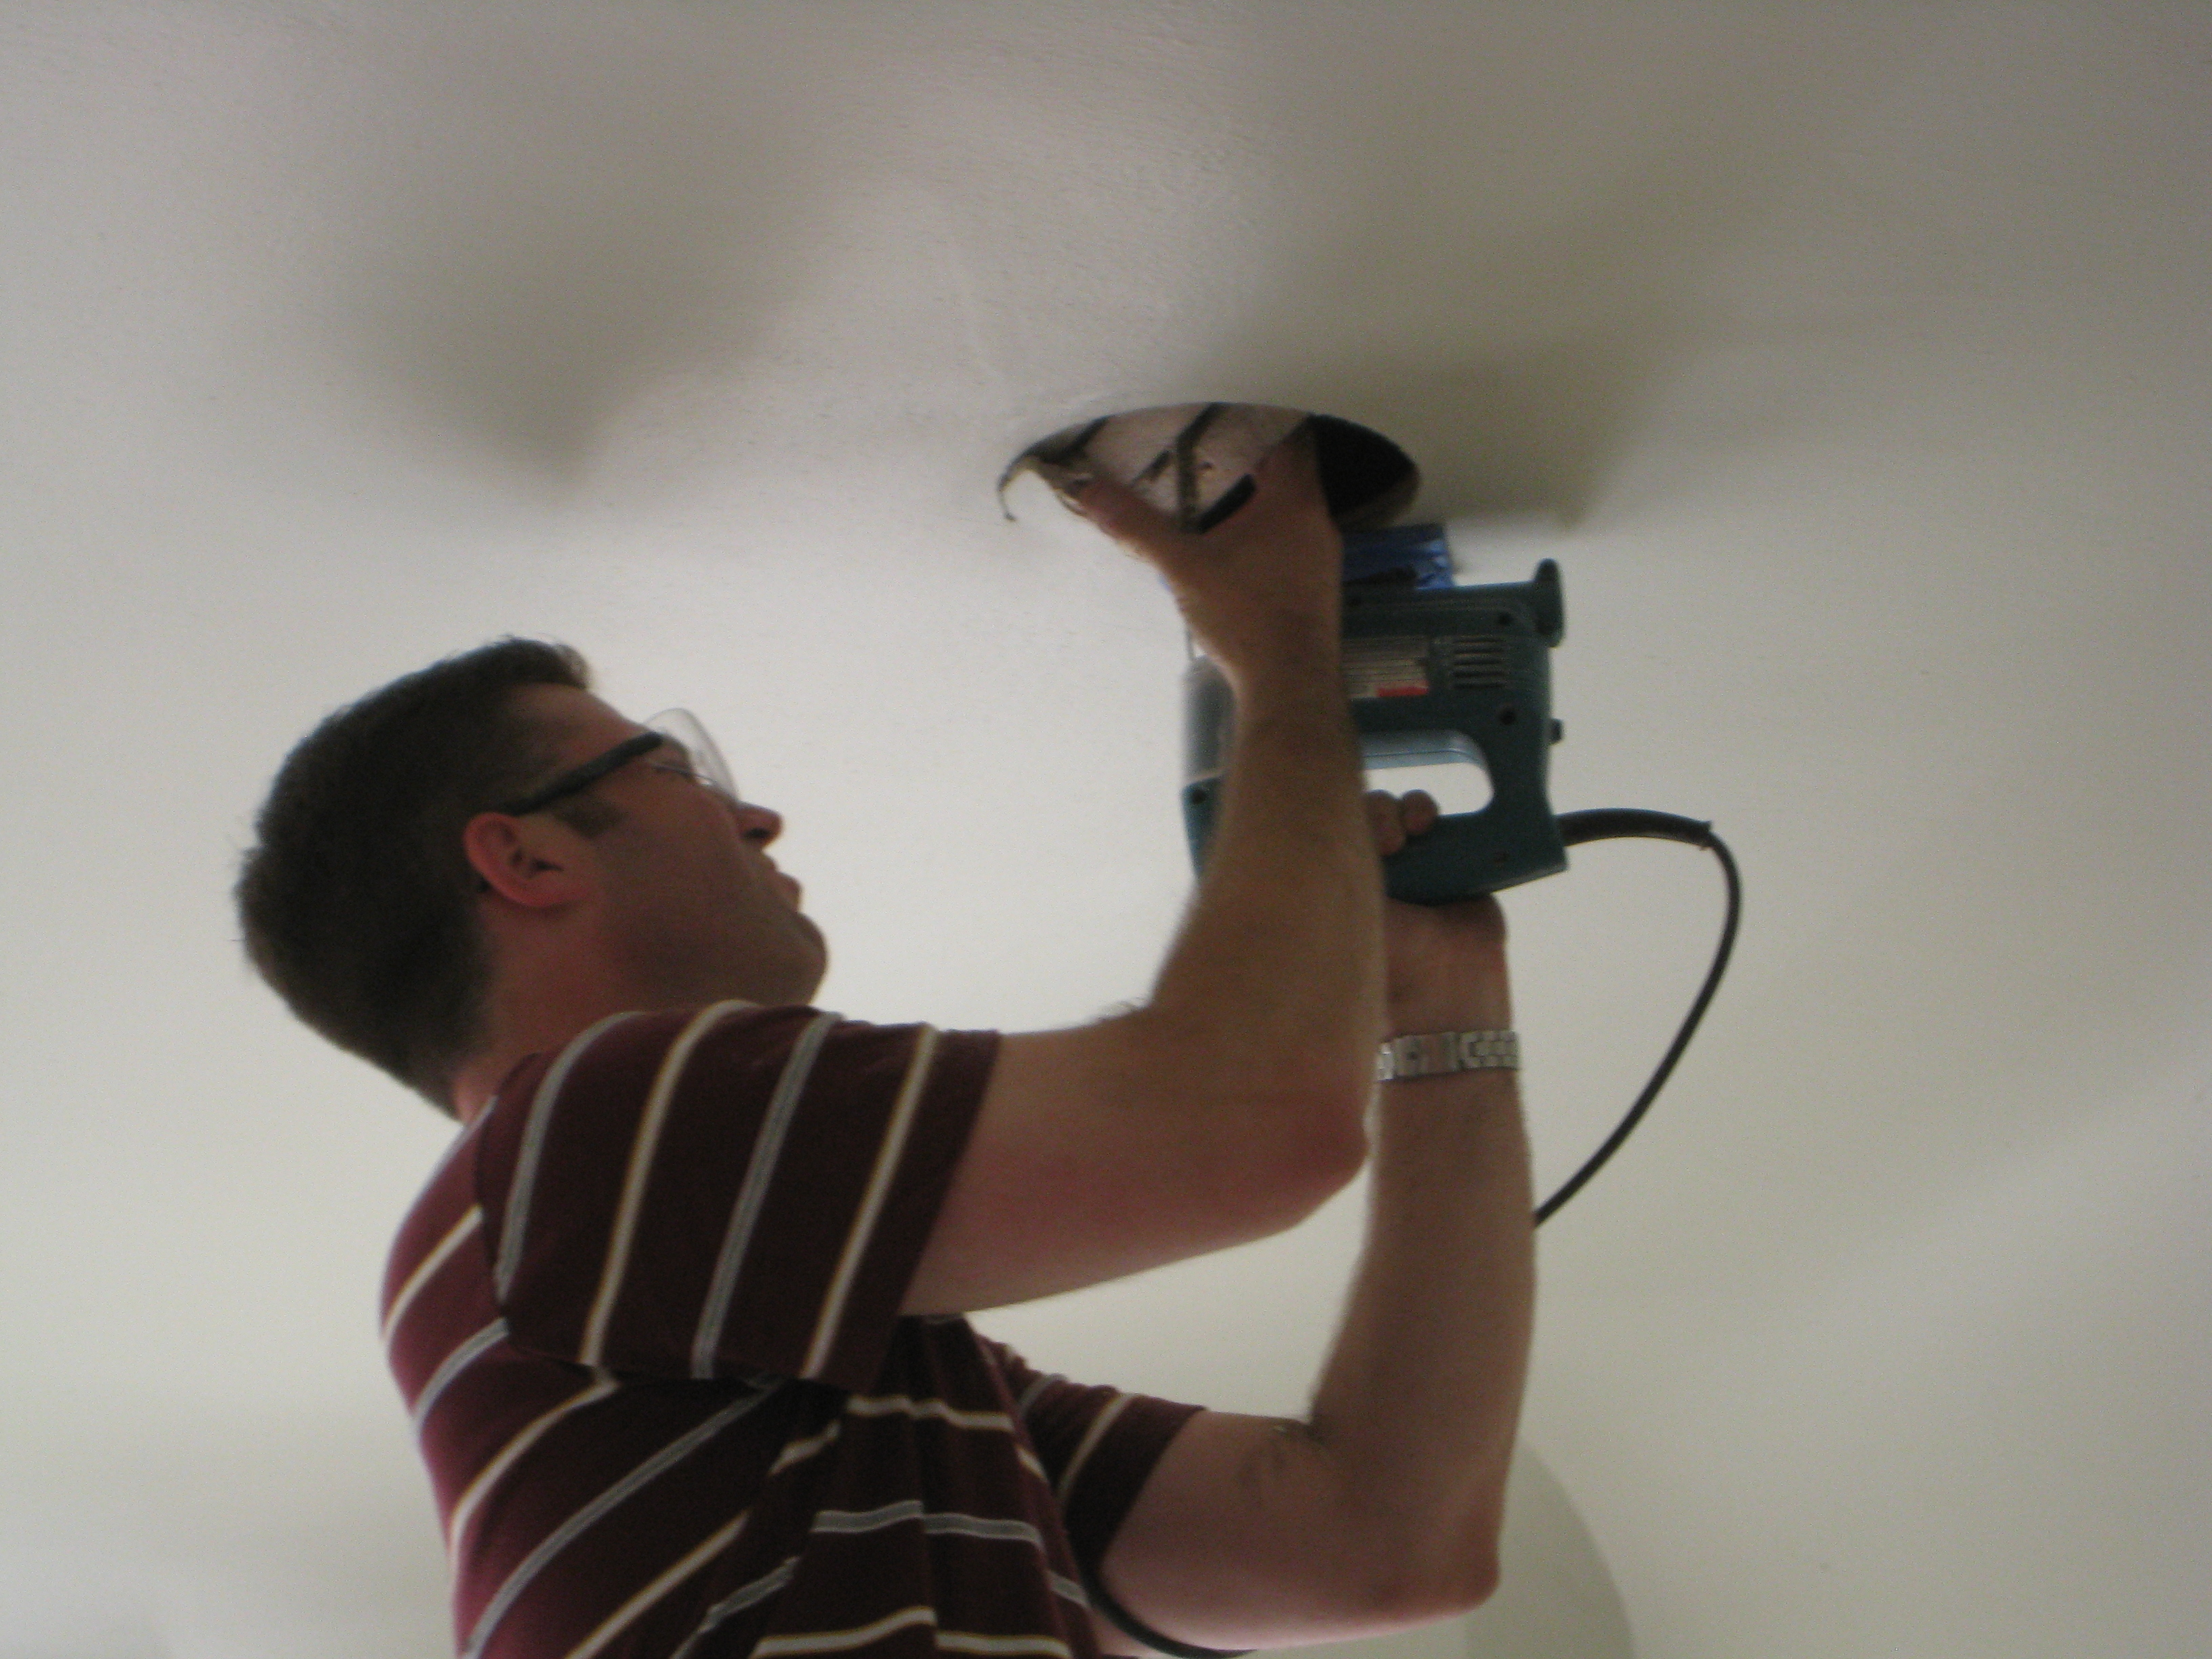 Cutting speaker holes in ceiling.